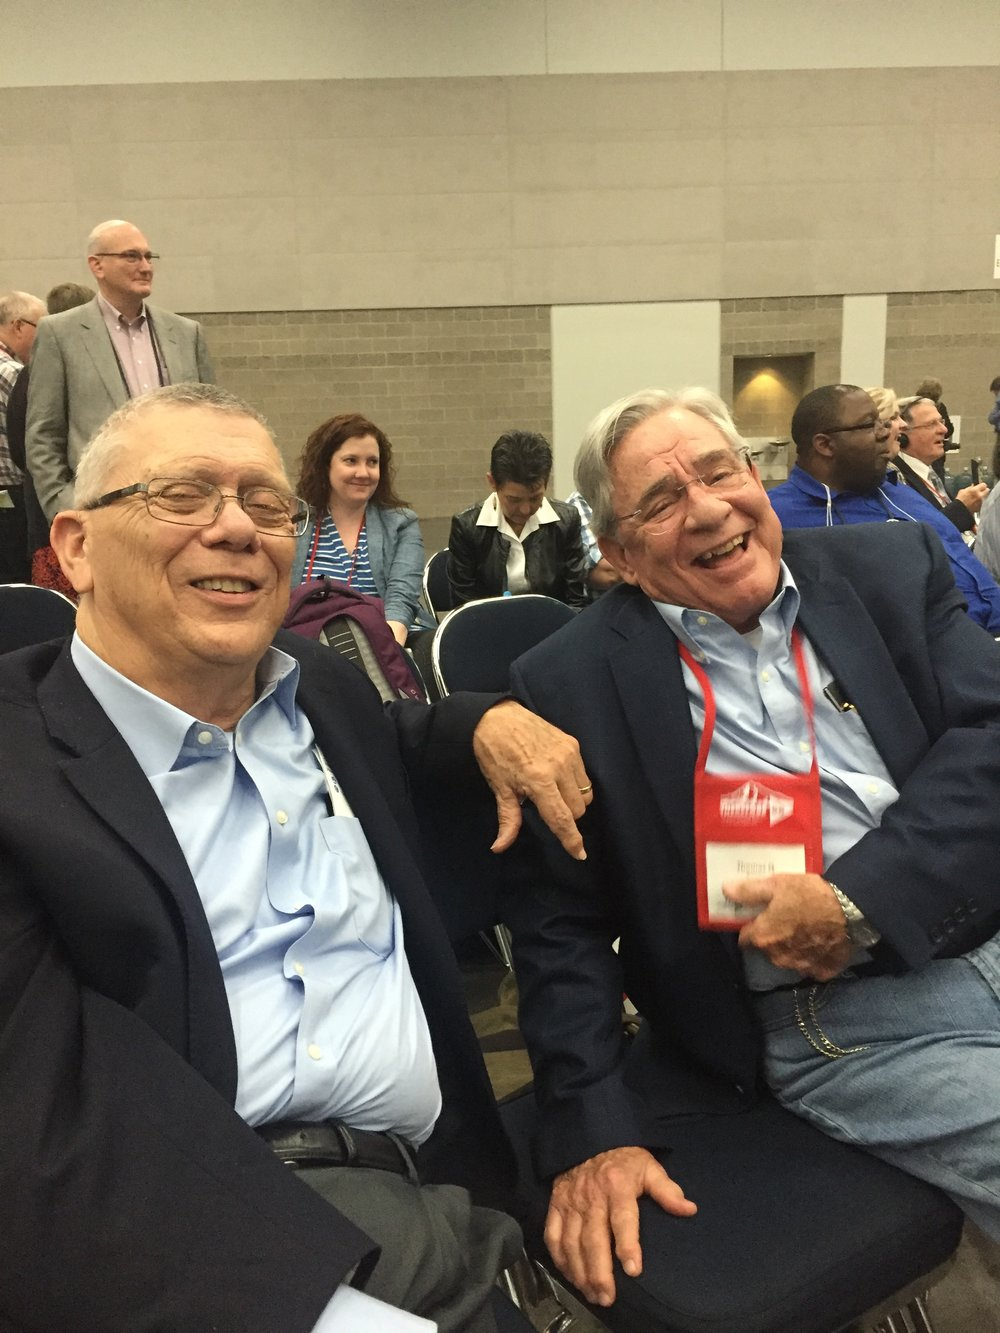 Rev. Charles McClure and Rev. Thomas Q. Robbins. McClure has something to say about the nature of the Church and Robbins has something to say about Evangelism. These are two quality preachers.